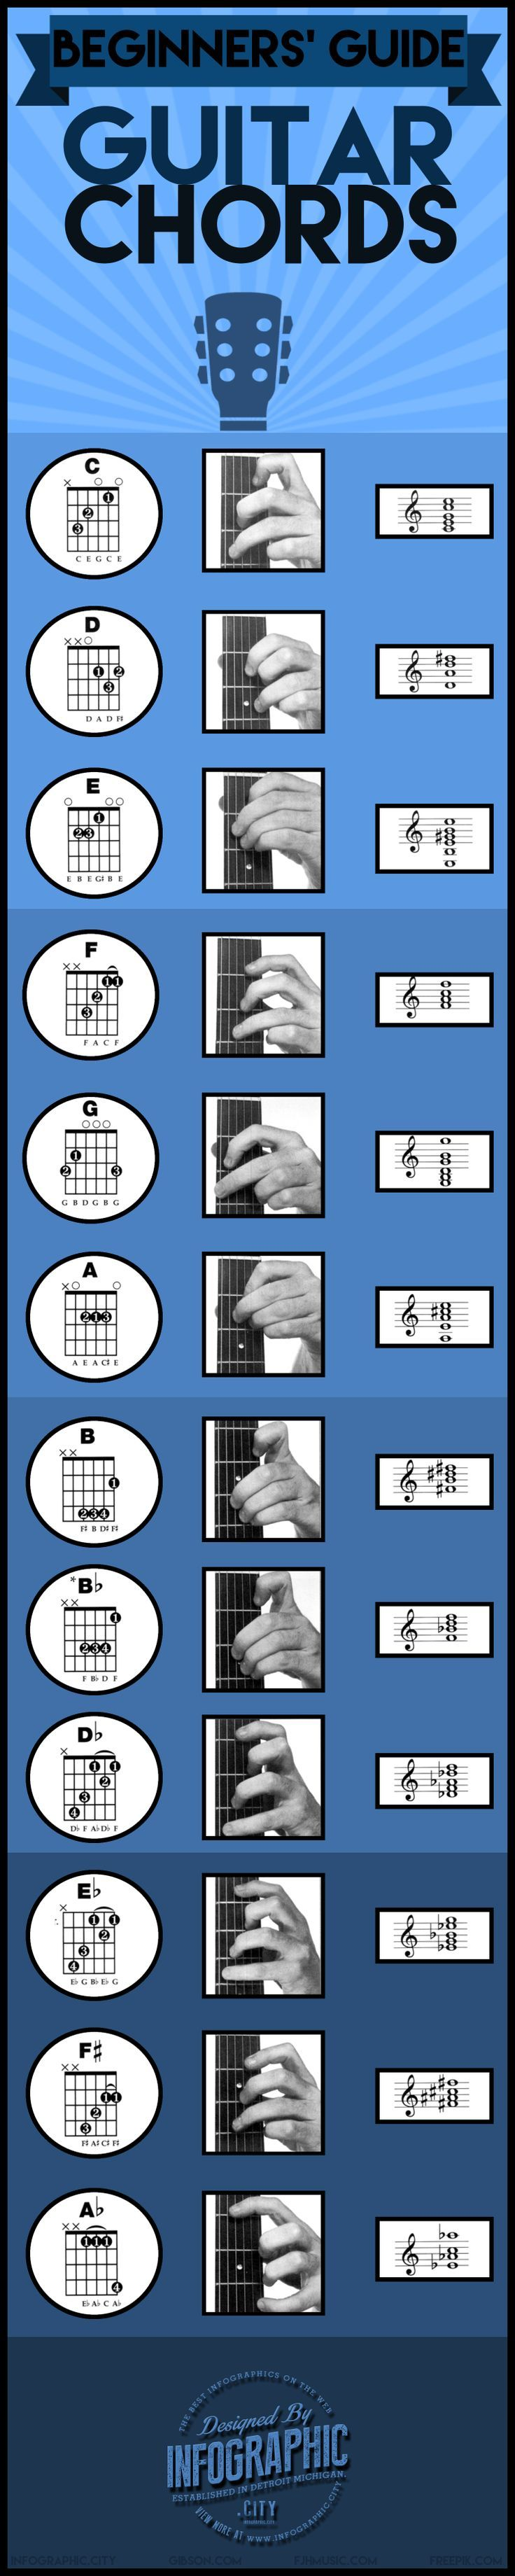 Learn How To Play The Guitar with FaChords Guitar